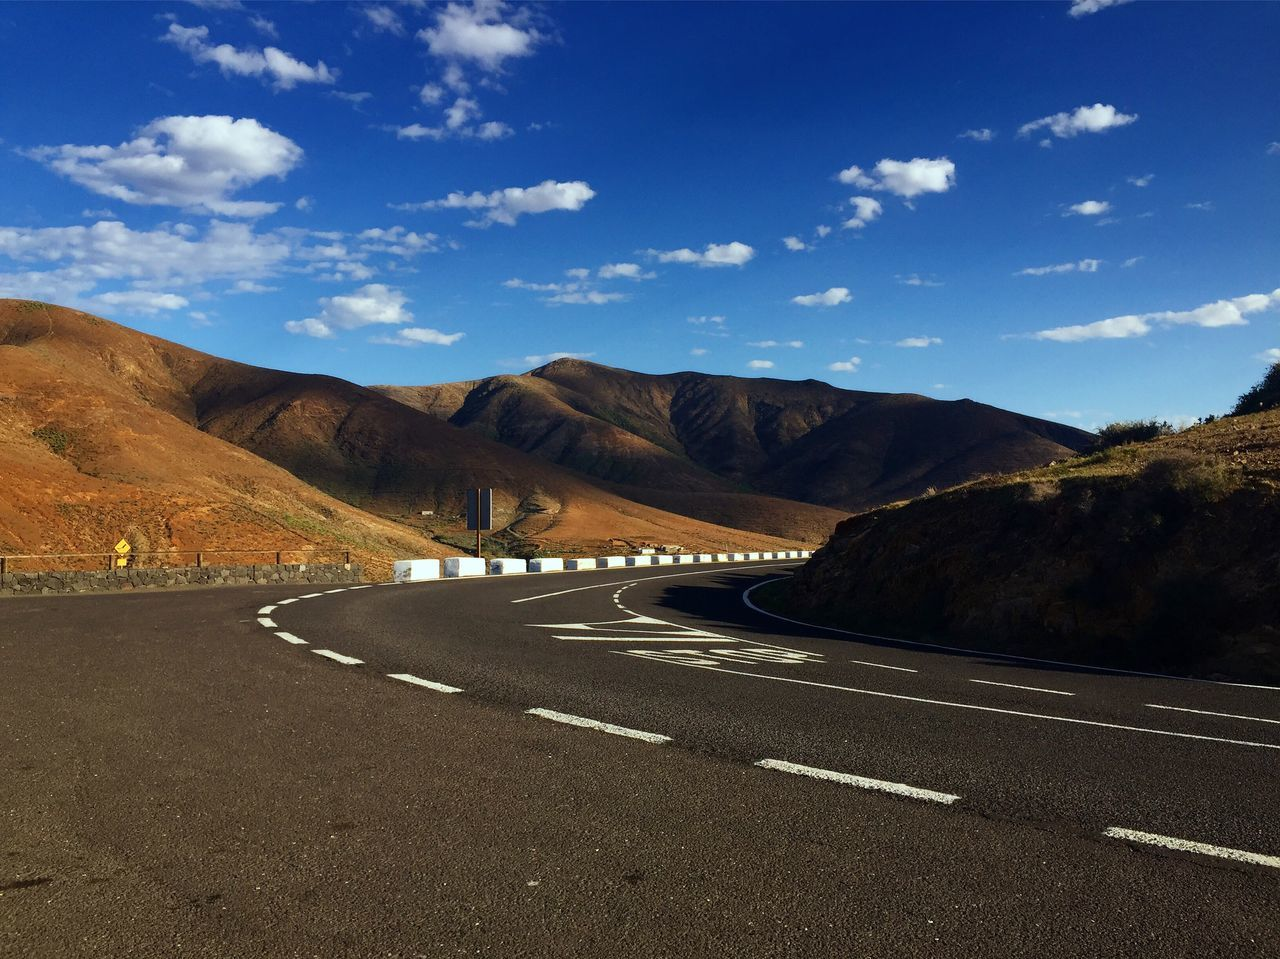 Cloud - Sky Road Sky Outdoors The Way Forward No People Winding Road Mountain Day Scenics Auto Racing Motorsport